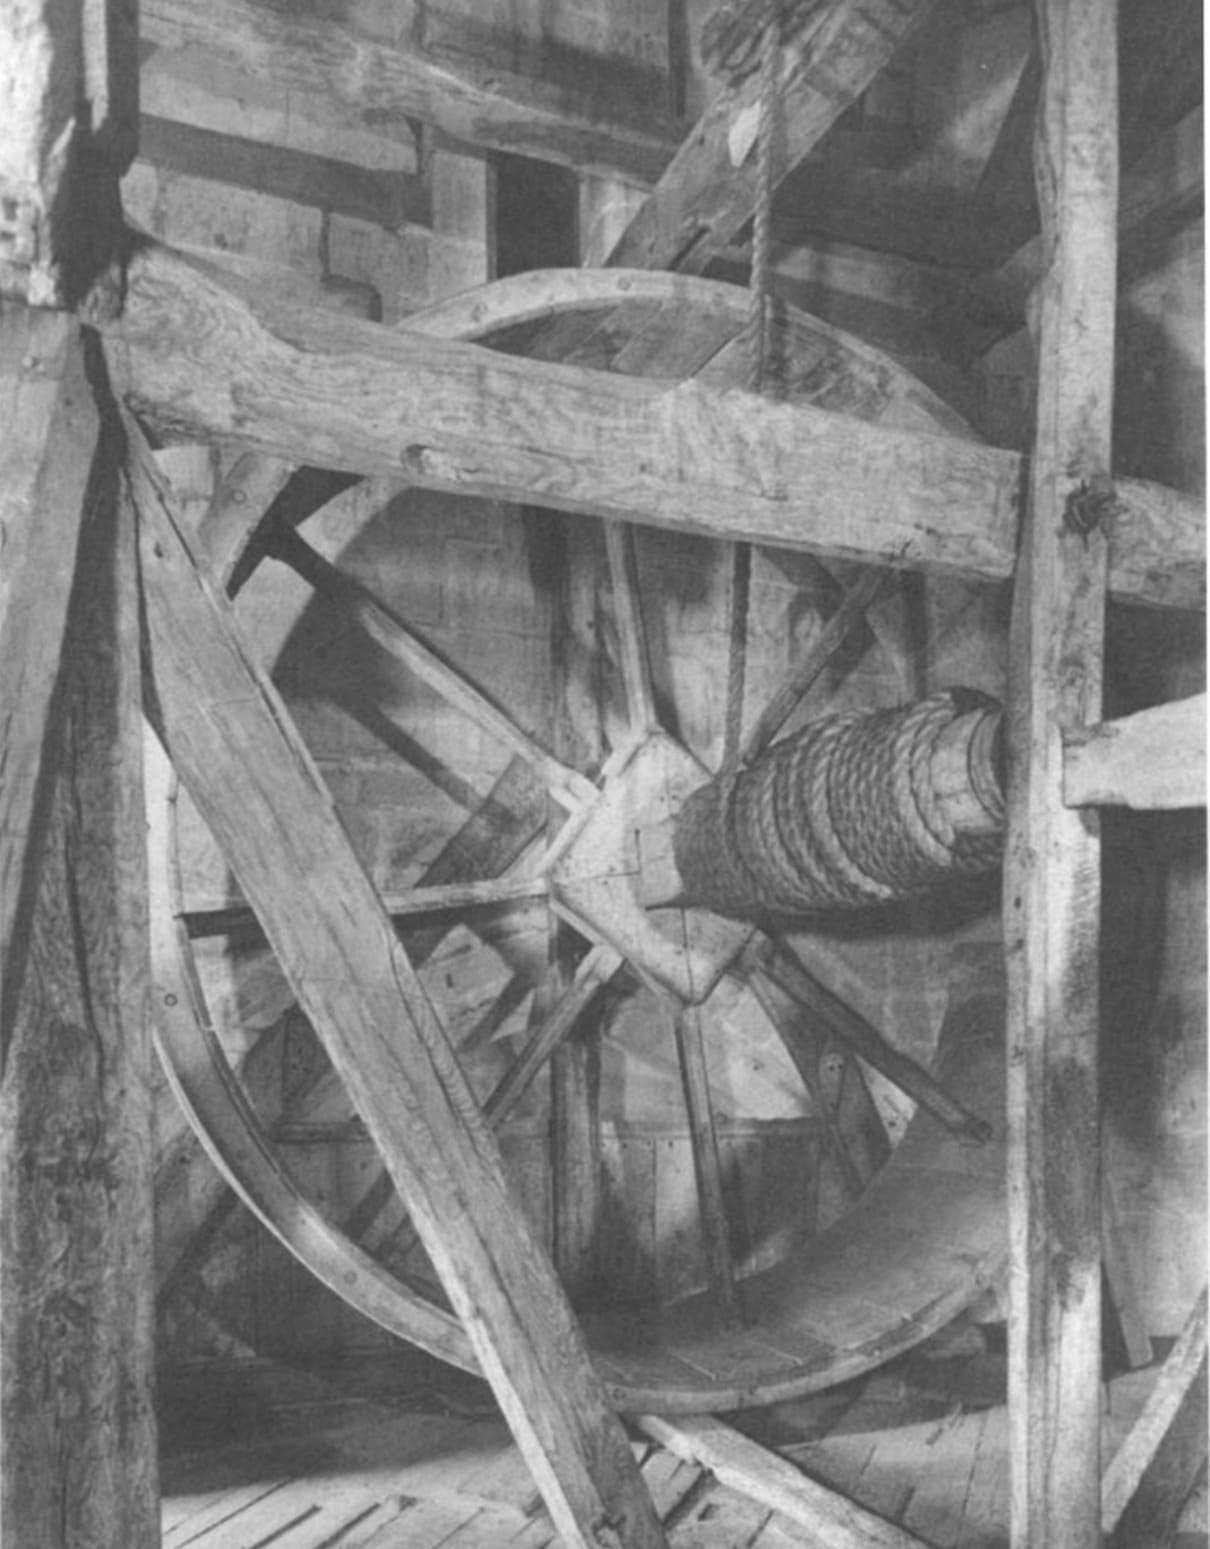 Treadwheel crane on Salisbury Cathedral